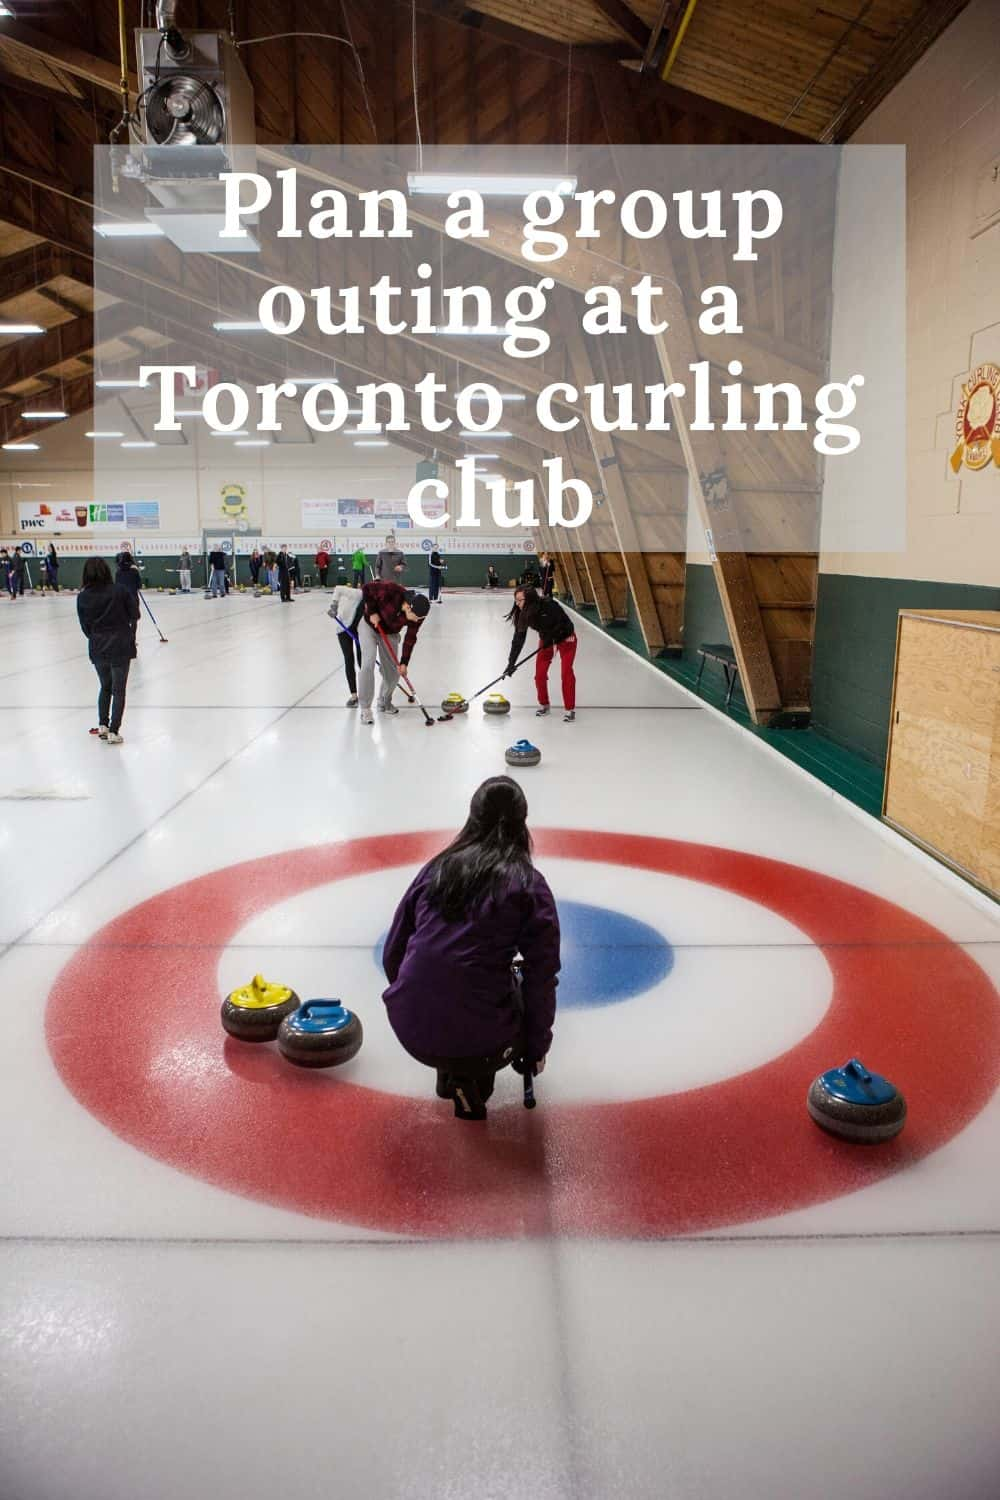 Curling clubs in Toronto that rent to groups - How to plan a fun curling event